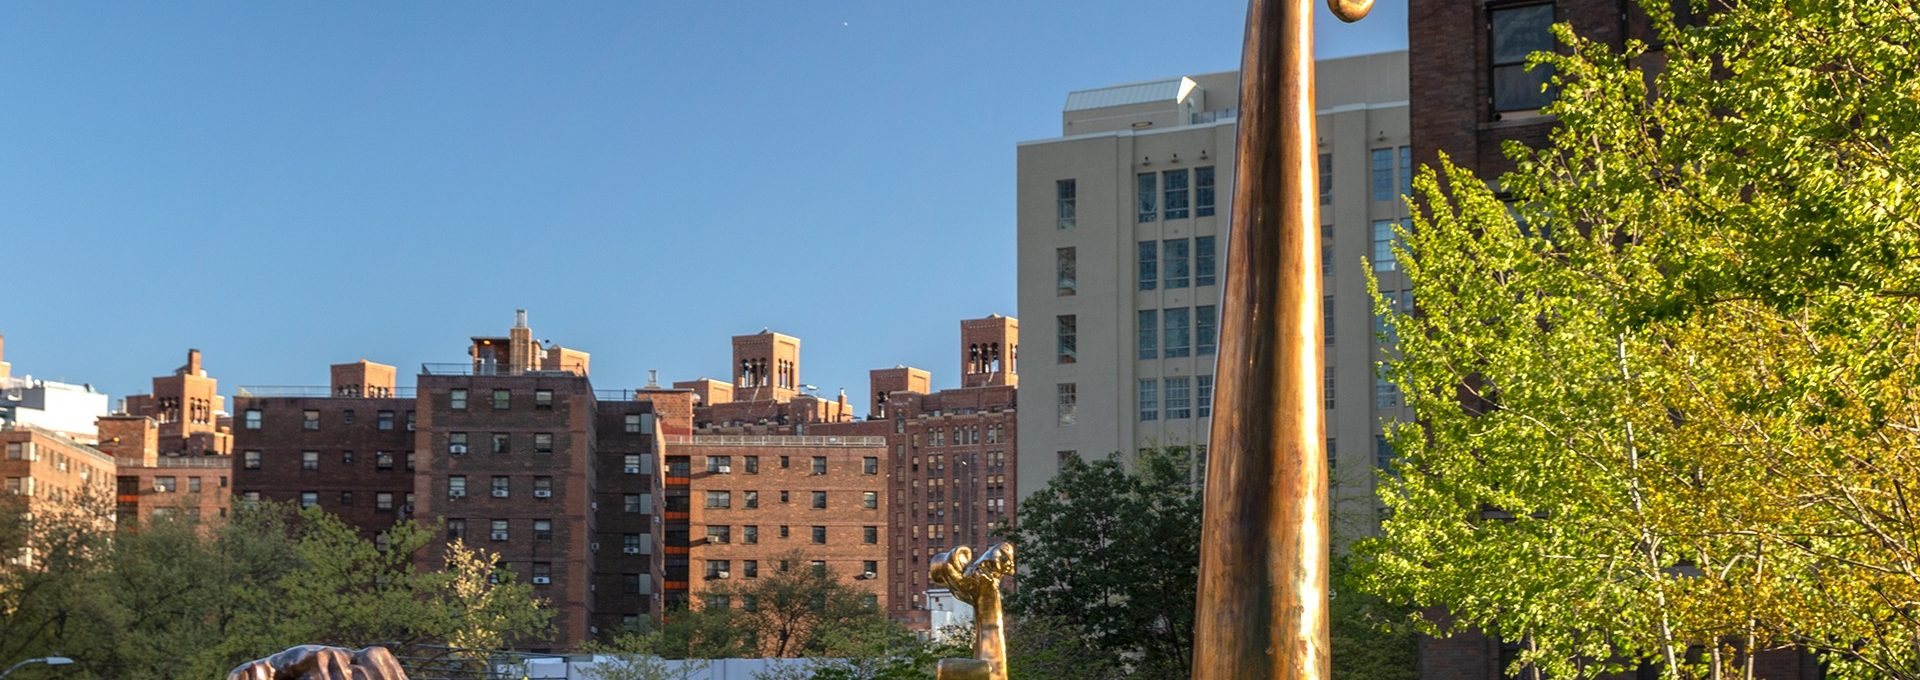 Alma Allens Huge Outdoor Sculptures Take Over The High Line In New York_Cover